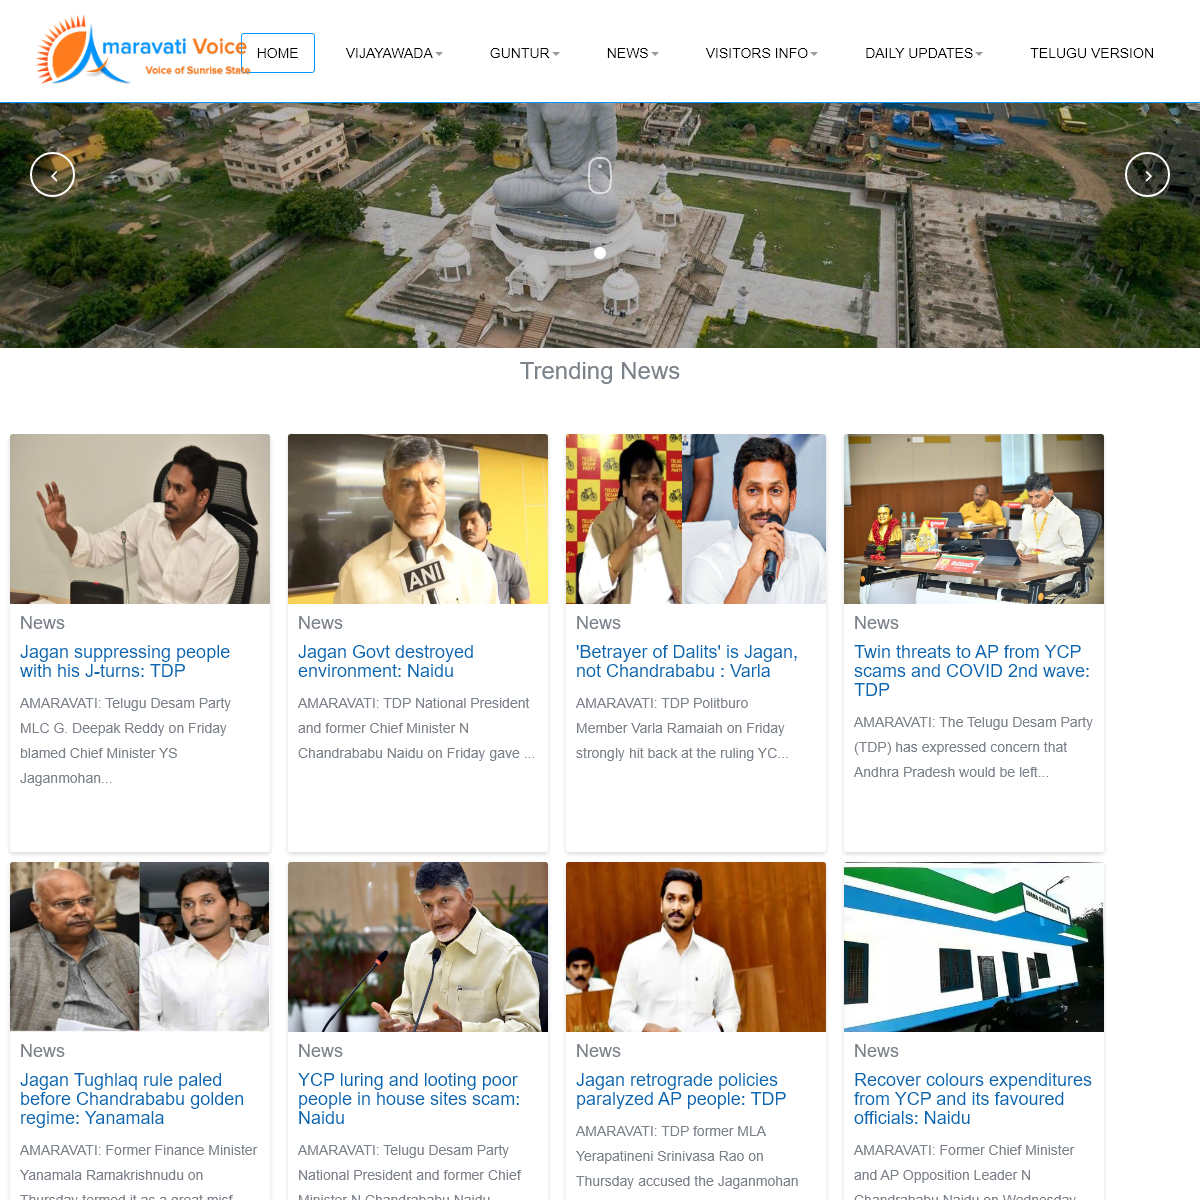 Amaravati Voice - Latest News - Hotels - Restaurants - Vijayawada - Guntur